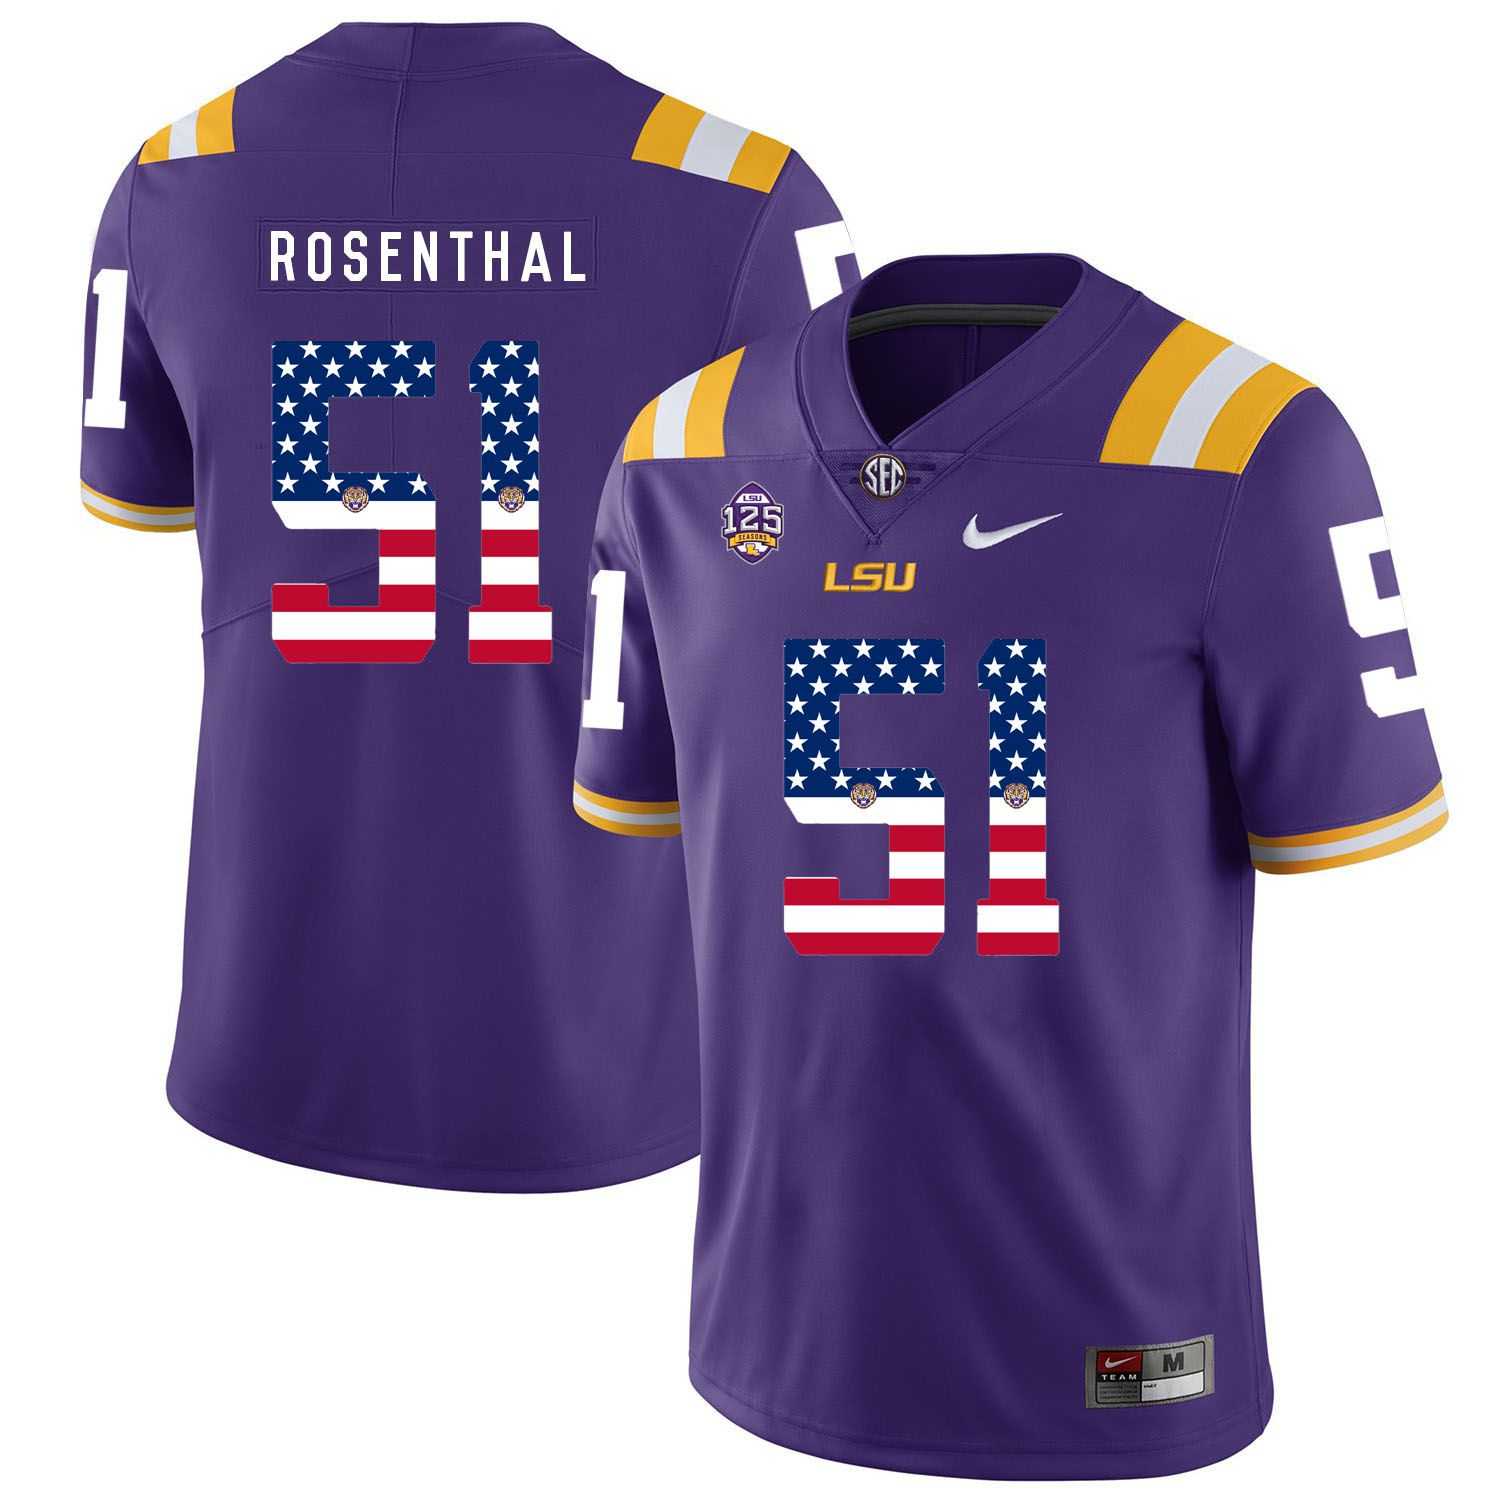 Men LSU Tigers 51 Rosenthal Purple Flag Customized NCAA Jerseys